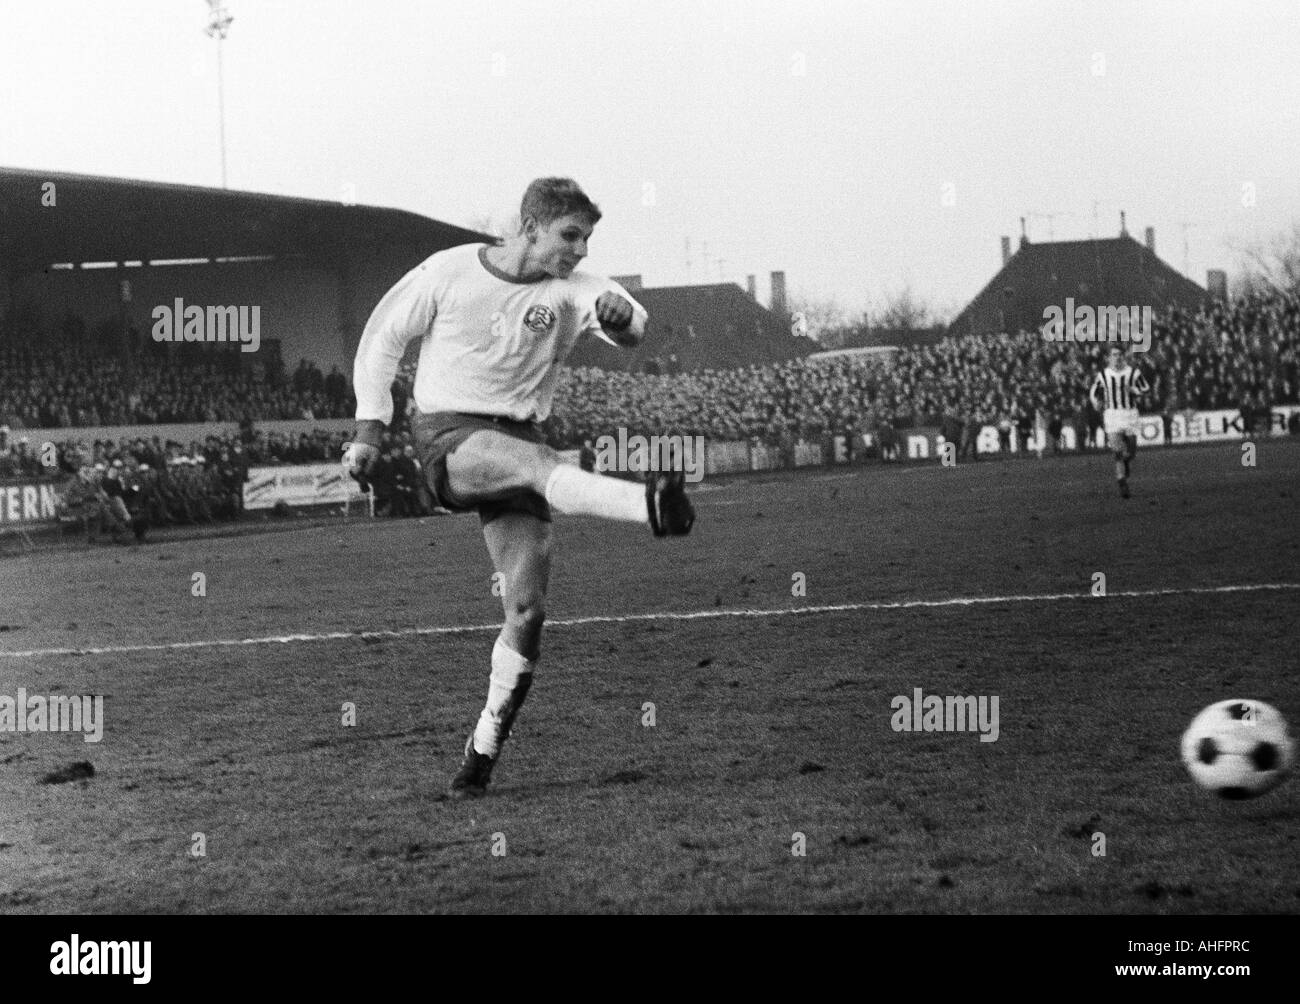 football, Regionalliga West, 1967/1968, ETB Schwarz-Weiss Essen versus Rot-Weiss Essen 1:3, Stadium am Uhlenkrug in Essen, scene of the match, Helmut Littek (RWE) shots on goal - Stock Image